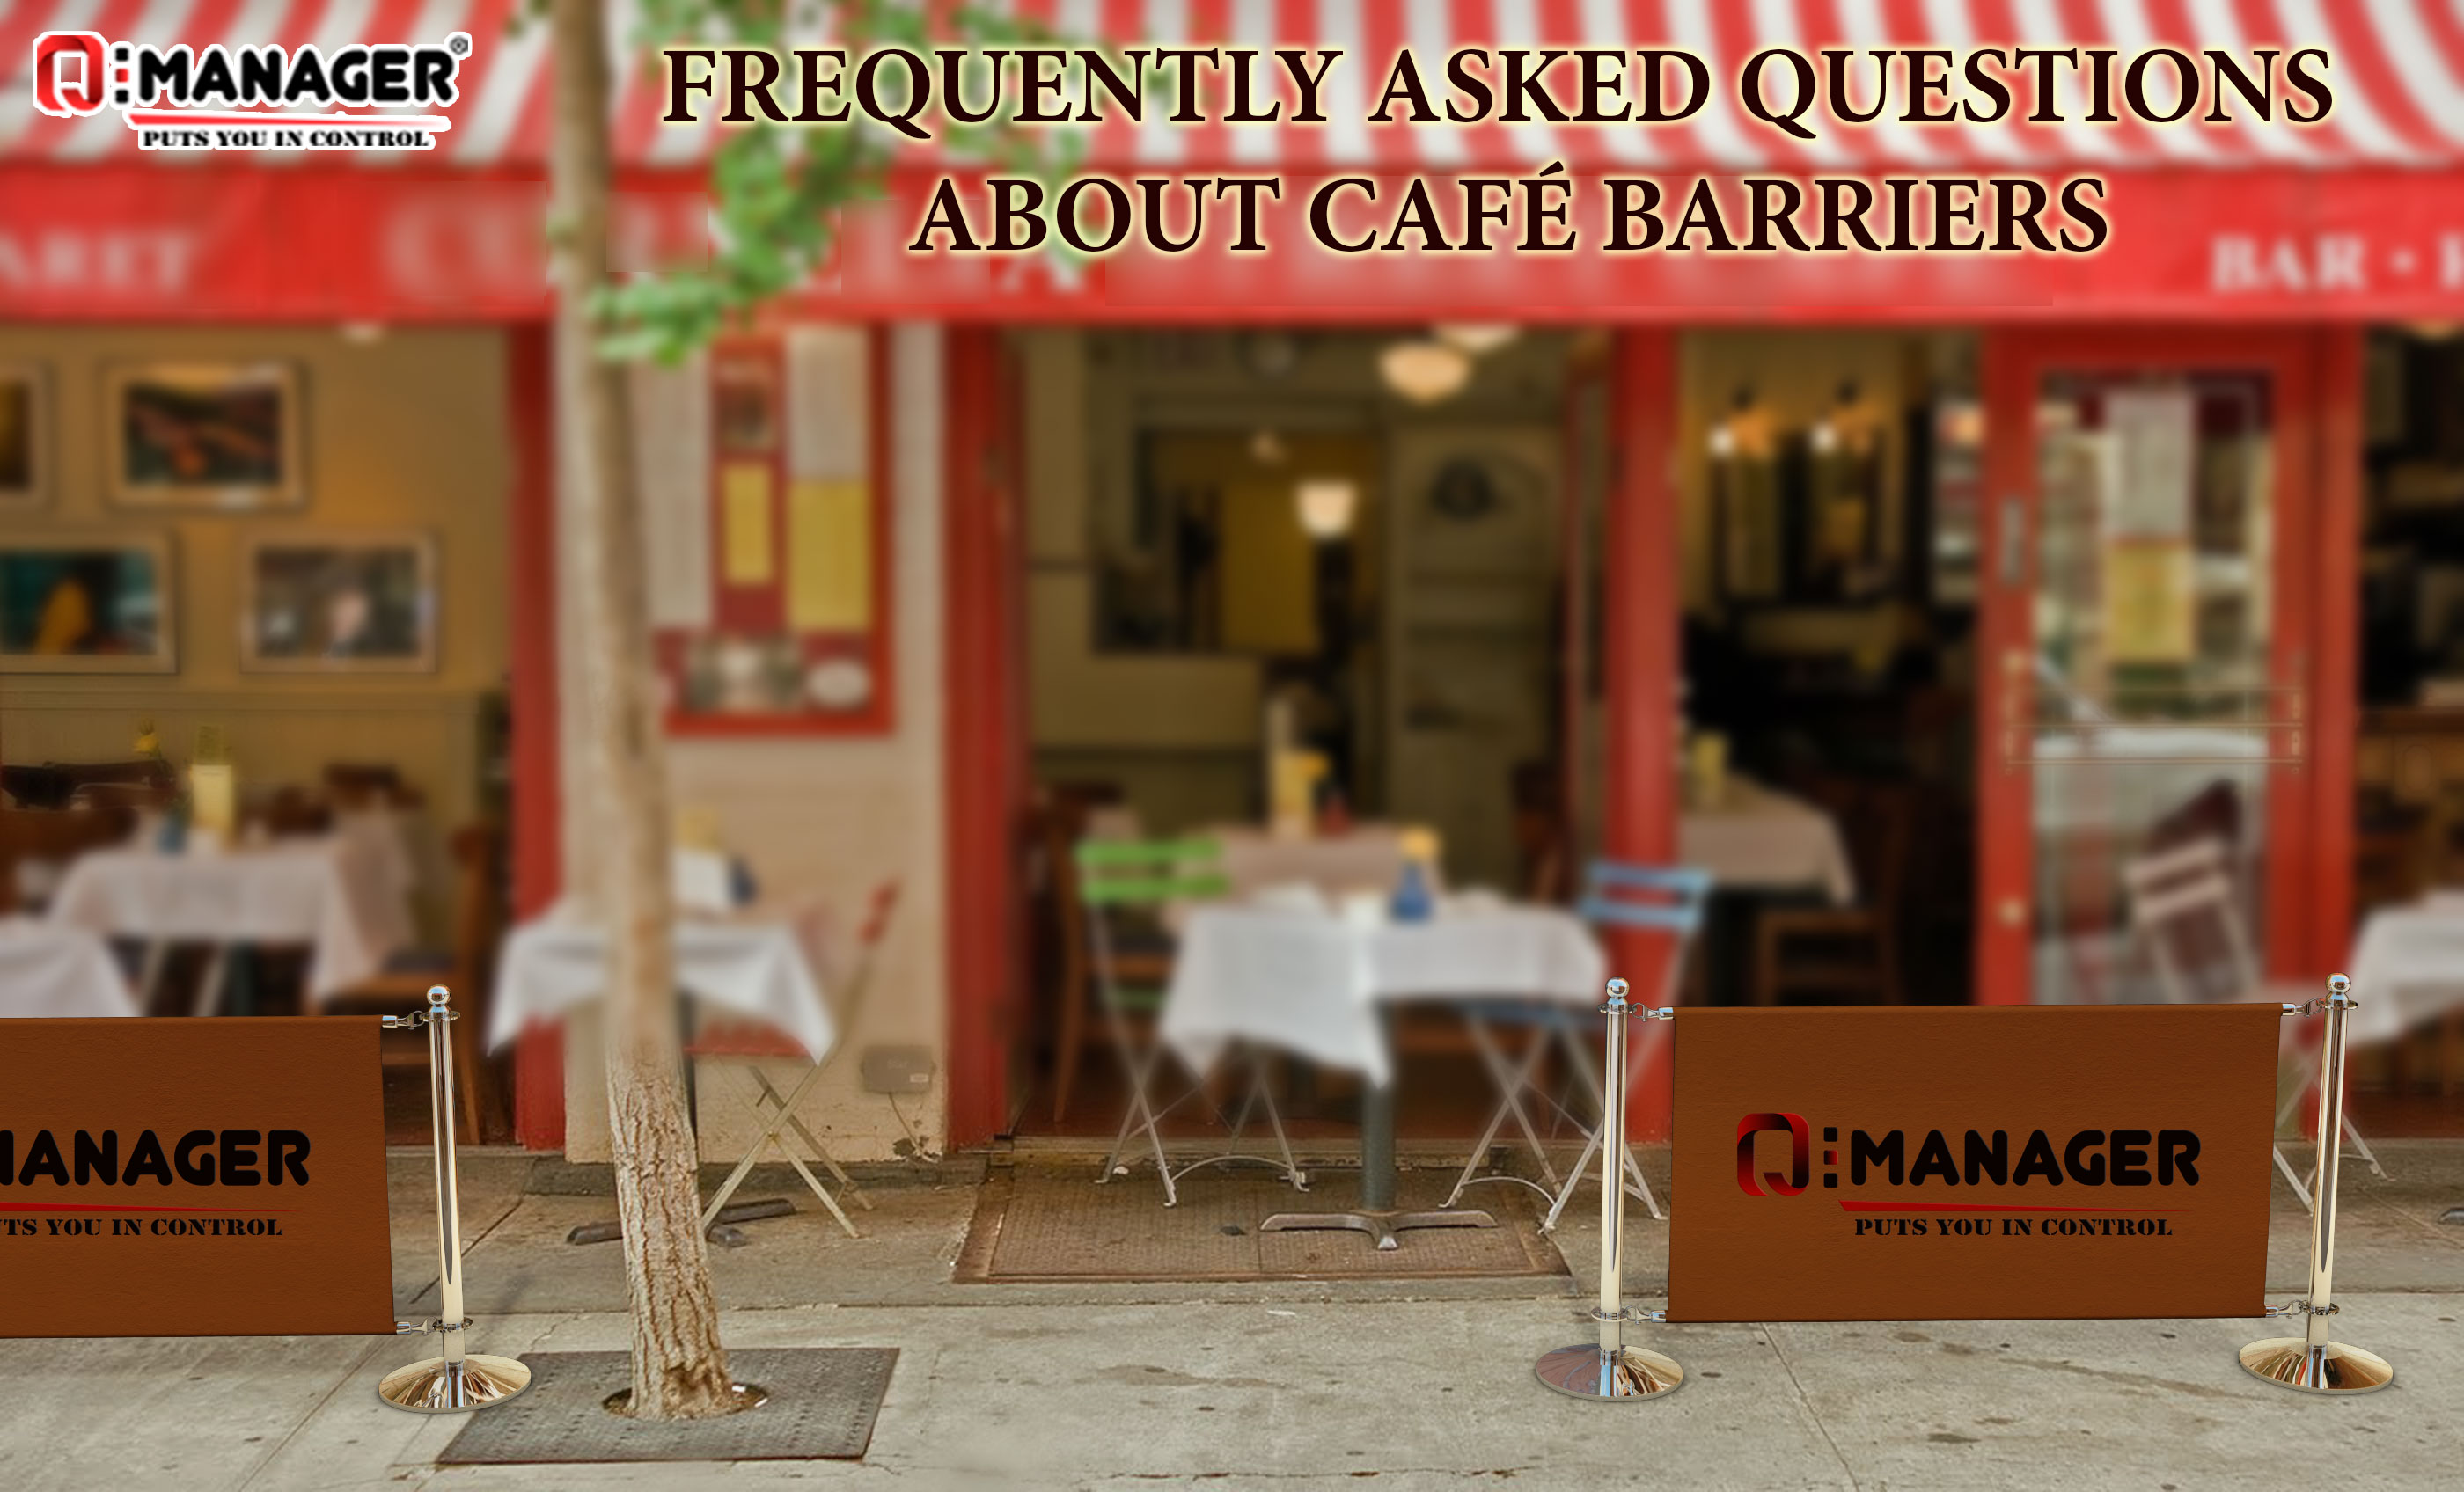 Frequently Asked Questions About Café Barriers